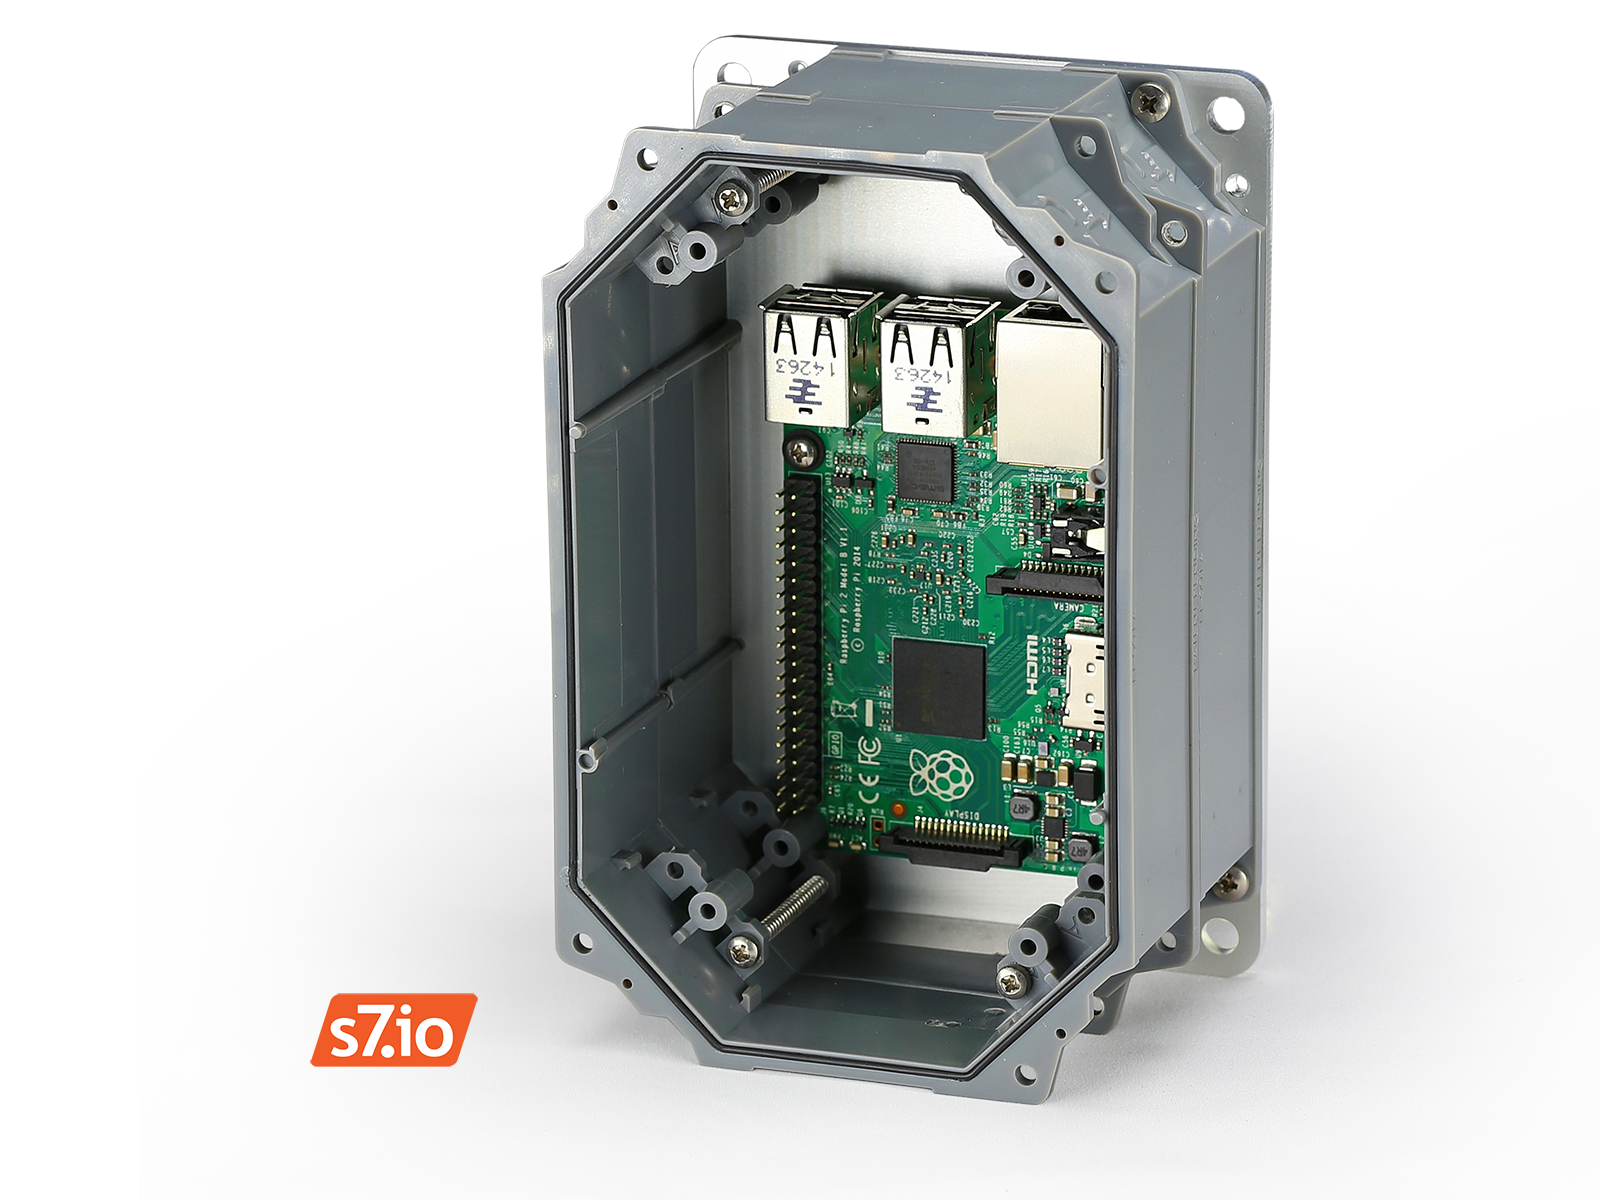 Rubicon Enclosure For Raspberry Pi May Be Stacked 2x Without Loss Of Ip67 Rating